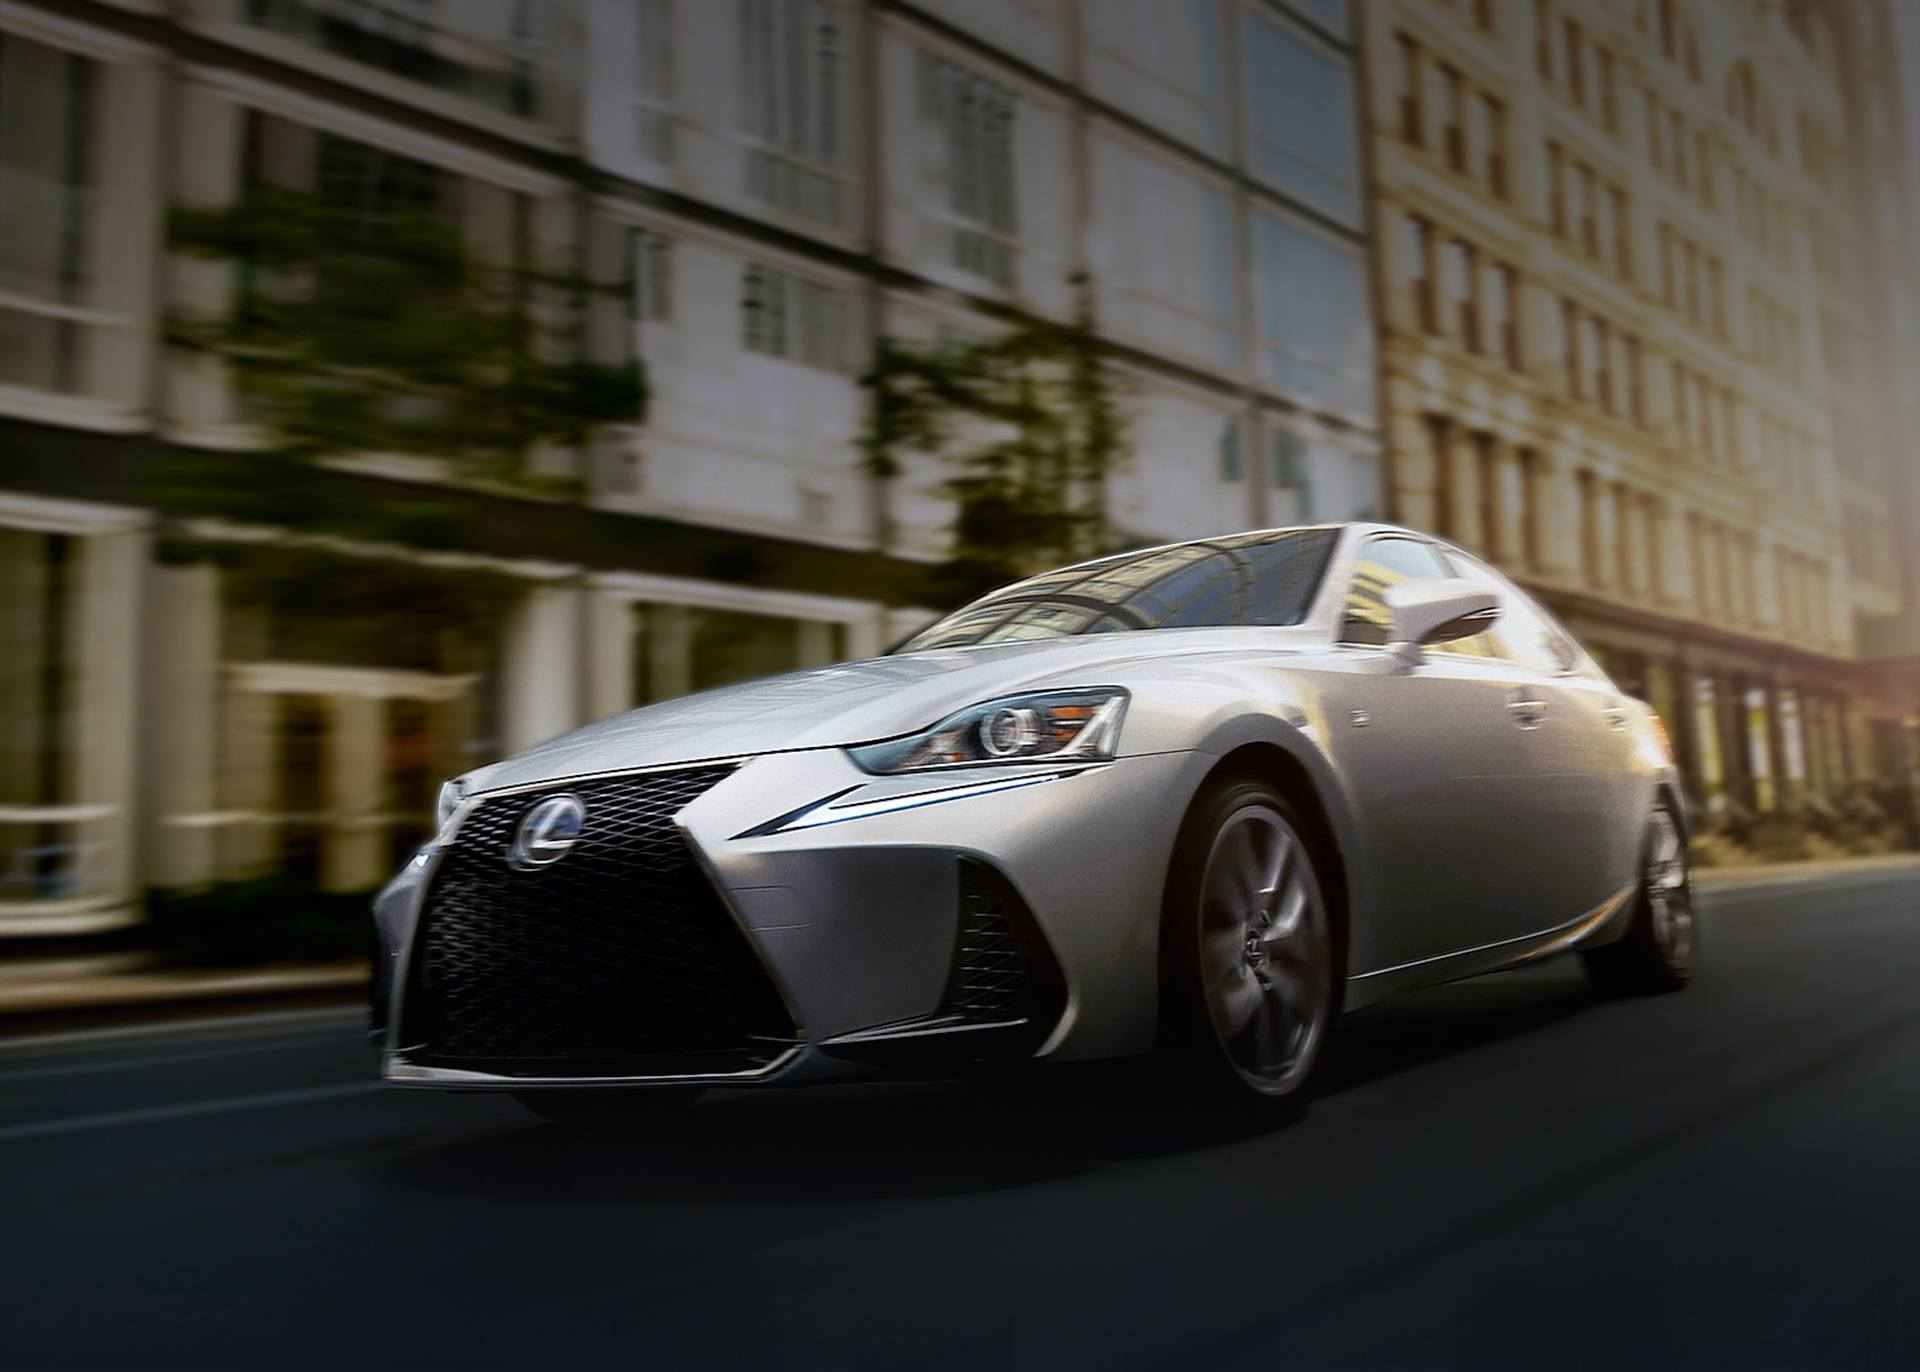 lexus-2019-is-300awd-features-performance-atomic-silver-left-3-4-x